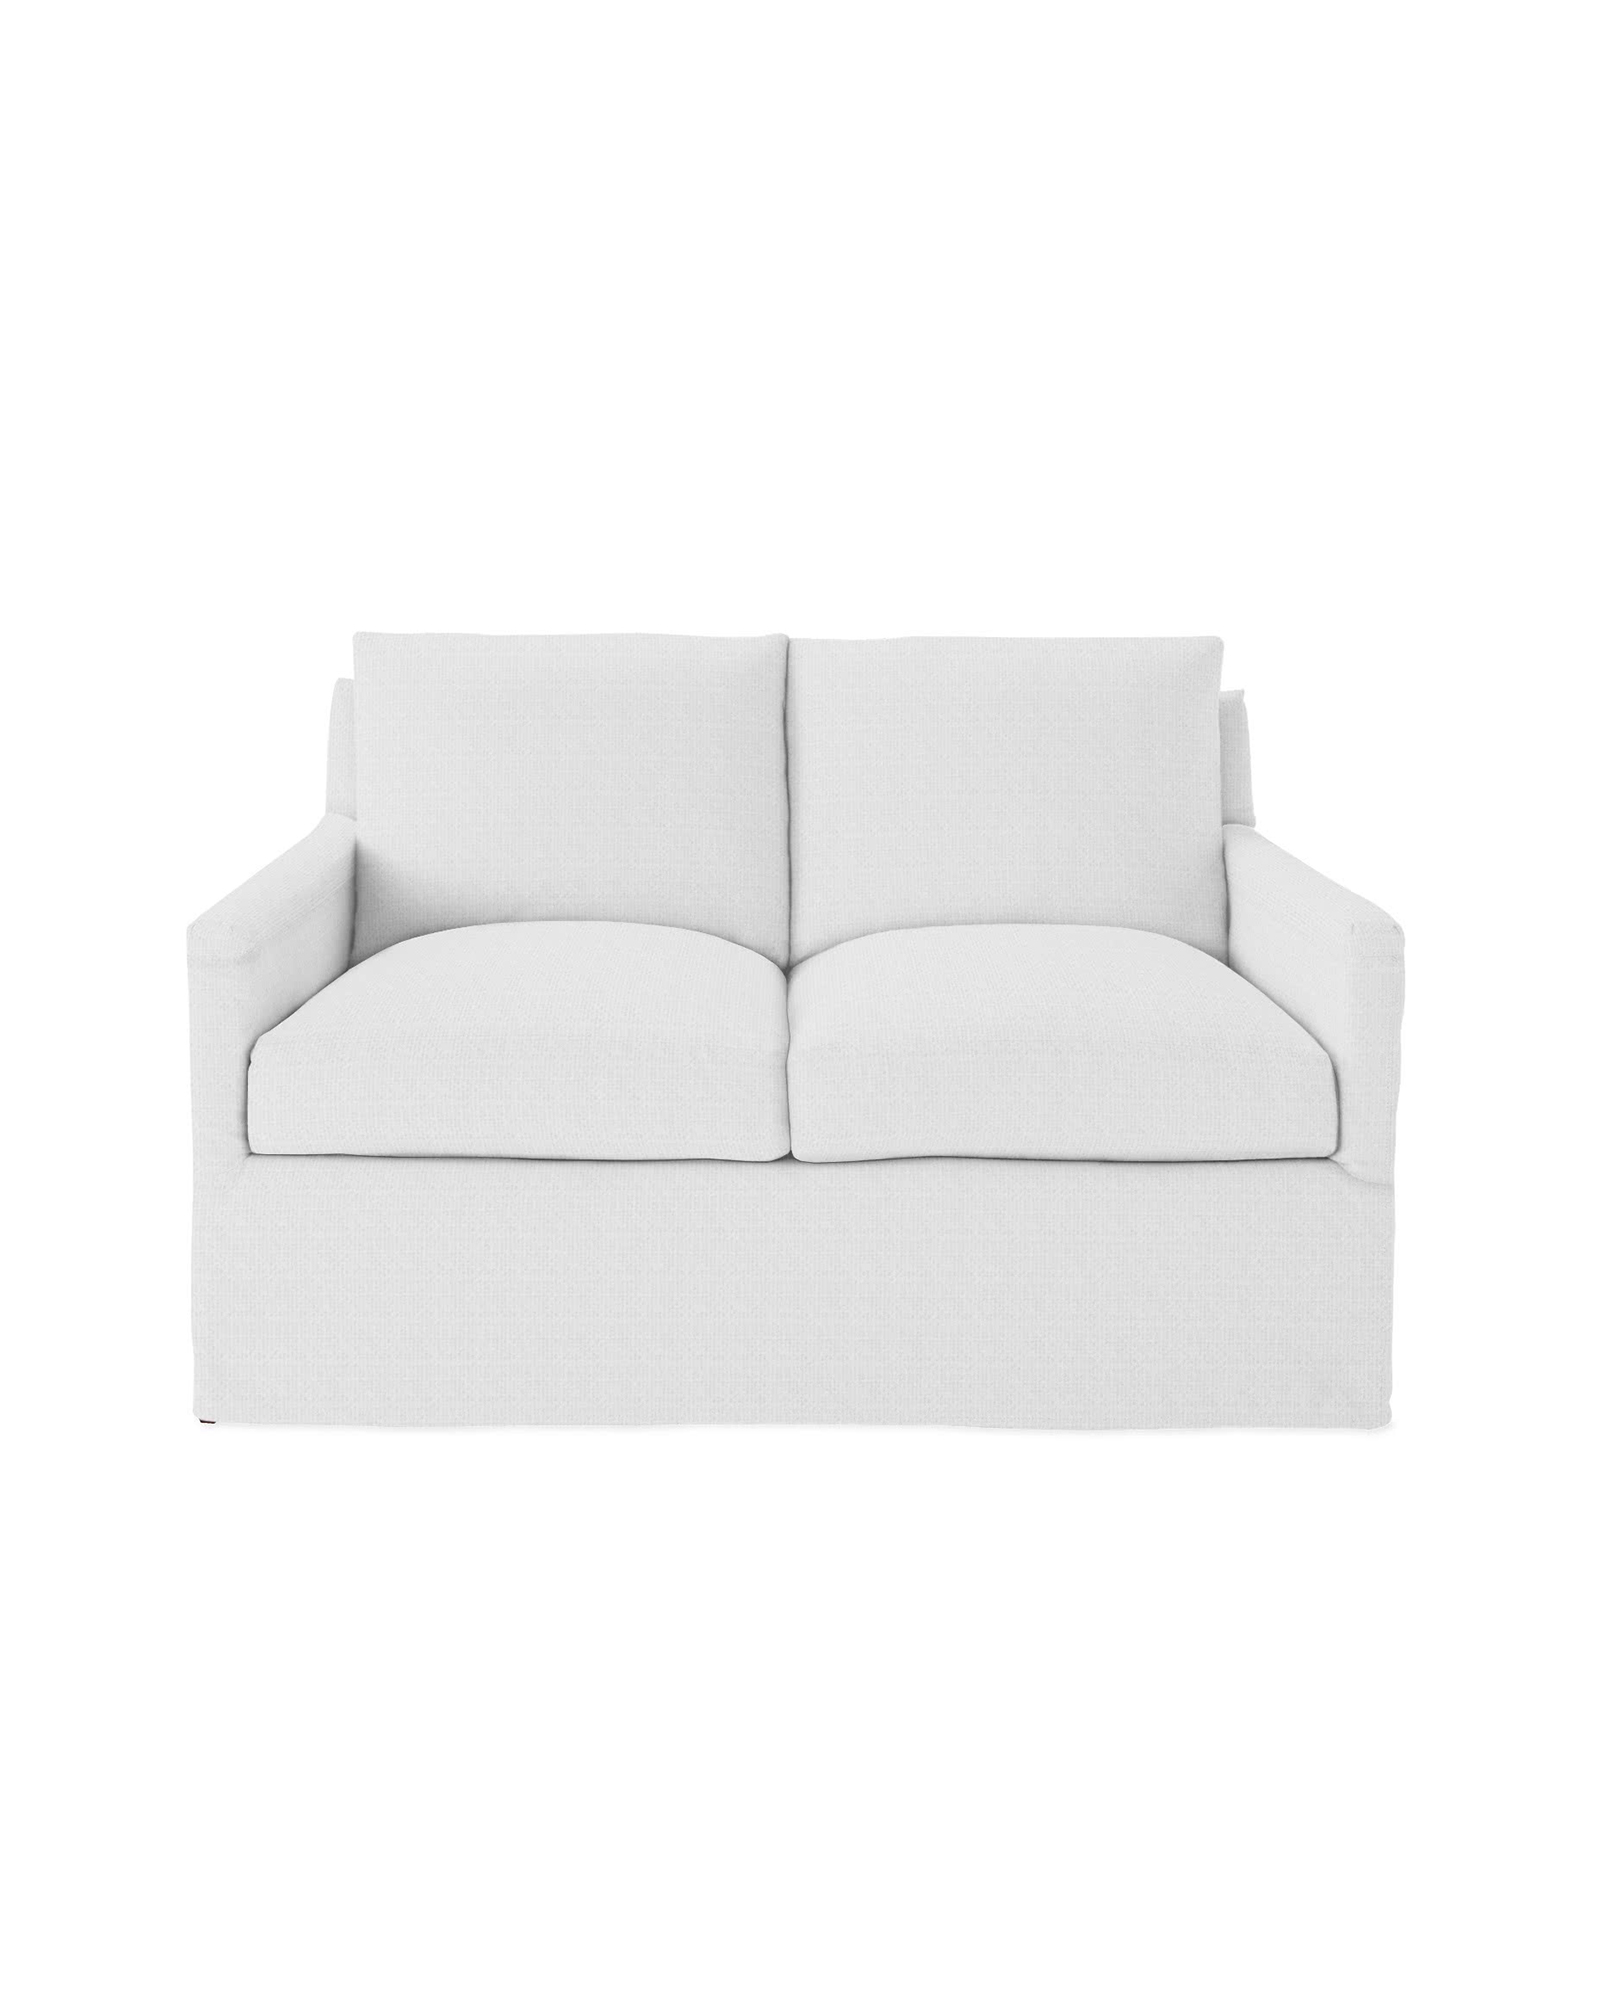 Spruce Street Loveseat – Slipcovered,